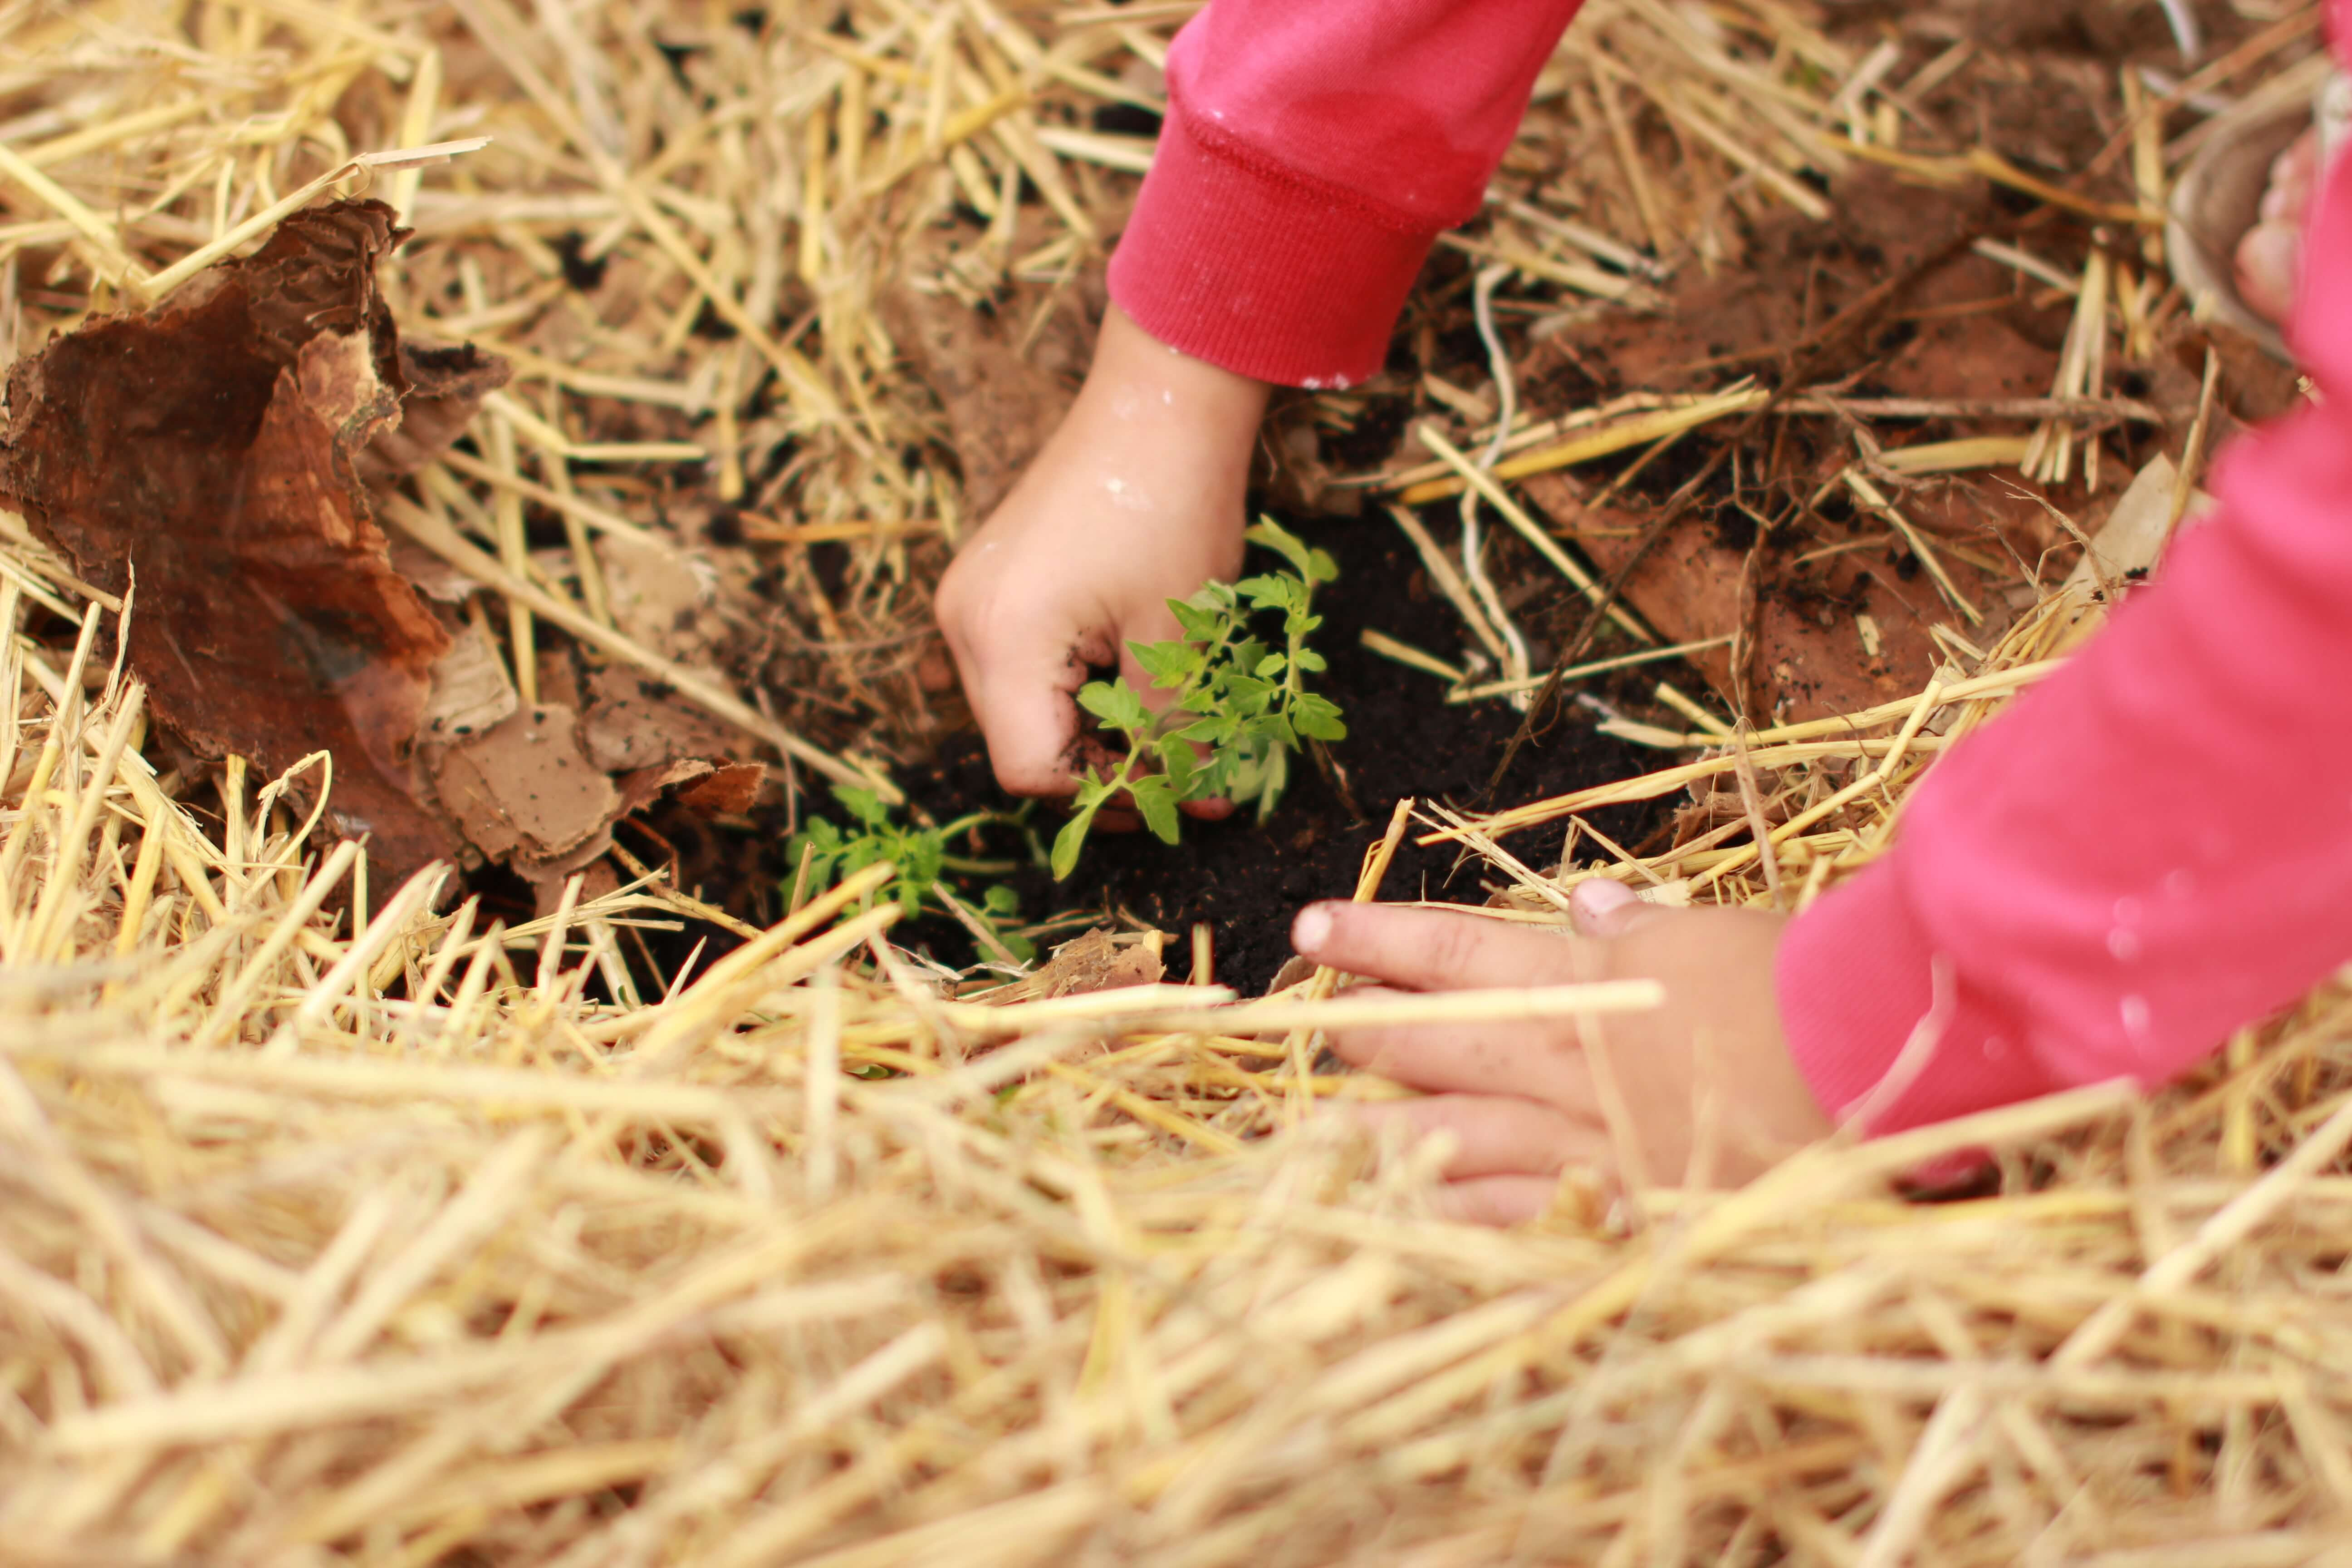 young child's hands planting a sapling amongst dry grass